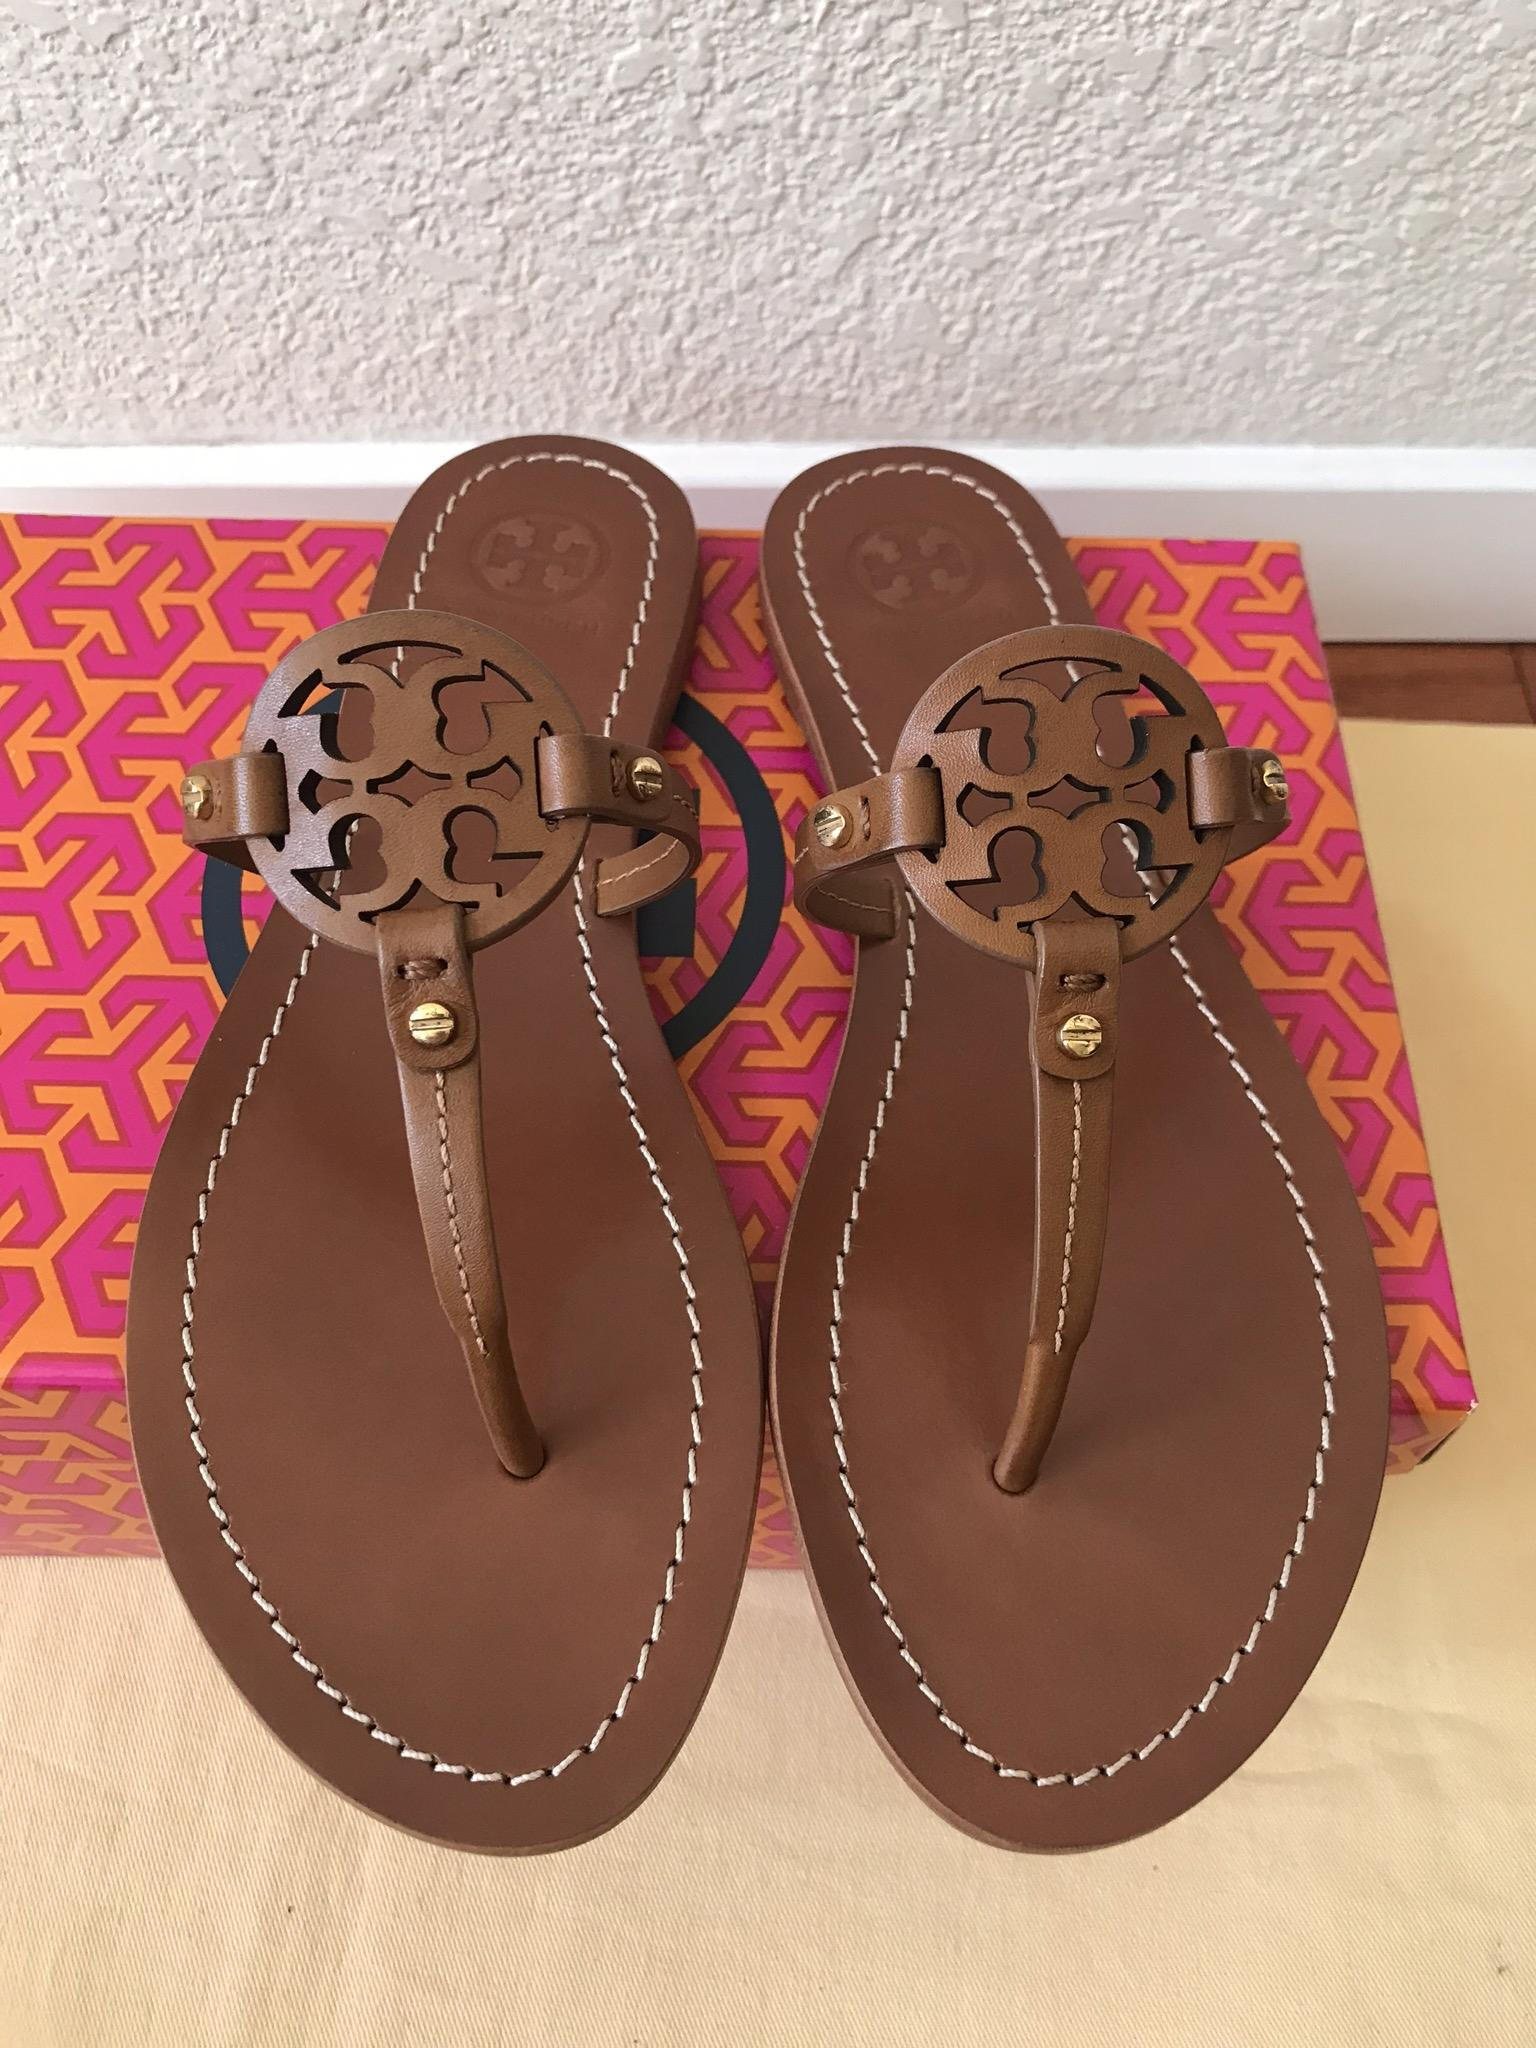 6c8cd041186b ... Tory Burch Brown 10m Mini Miller Flat Flat Flat Sandals Size US 10  Regular (M ...